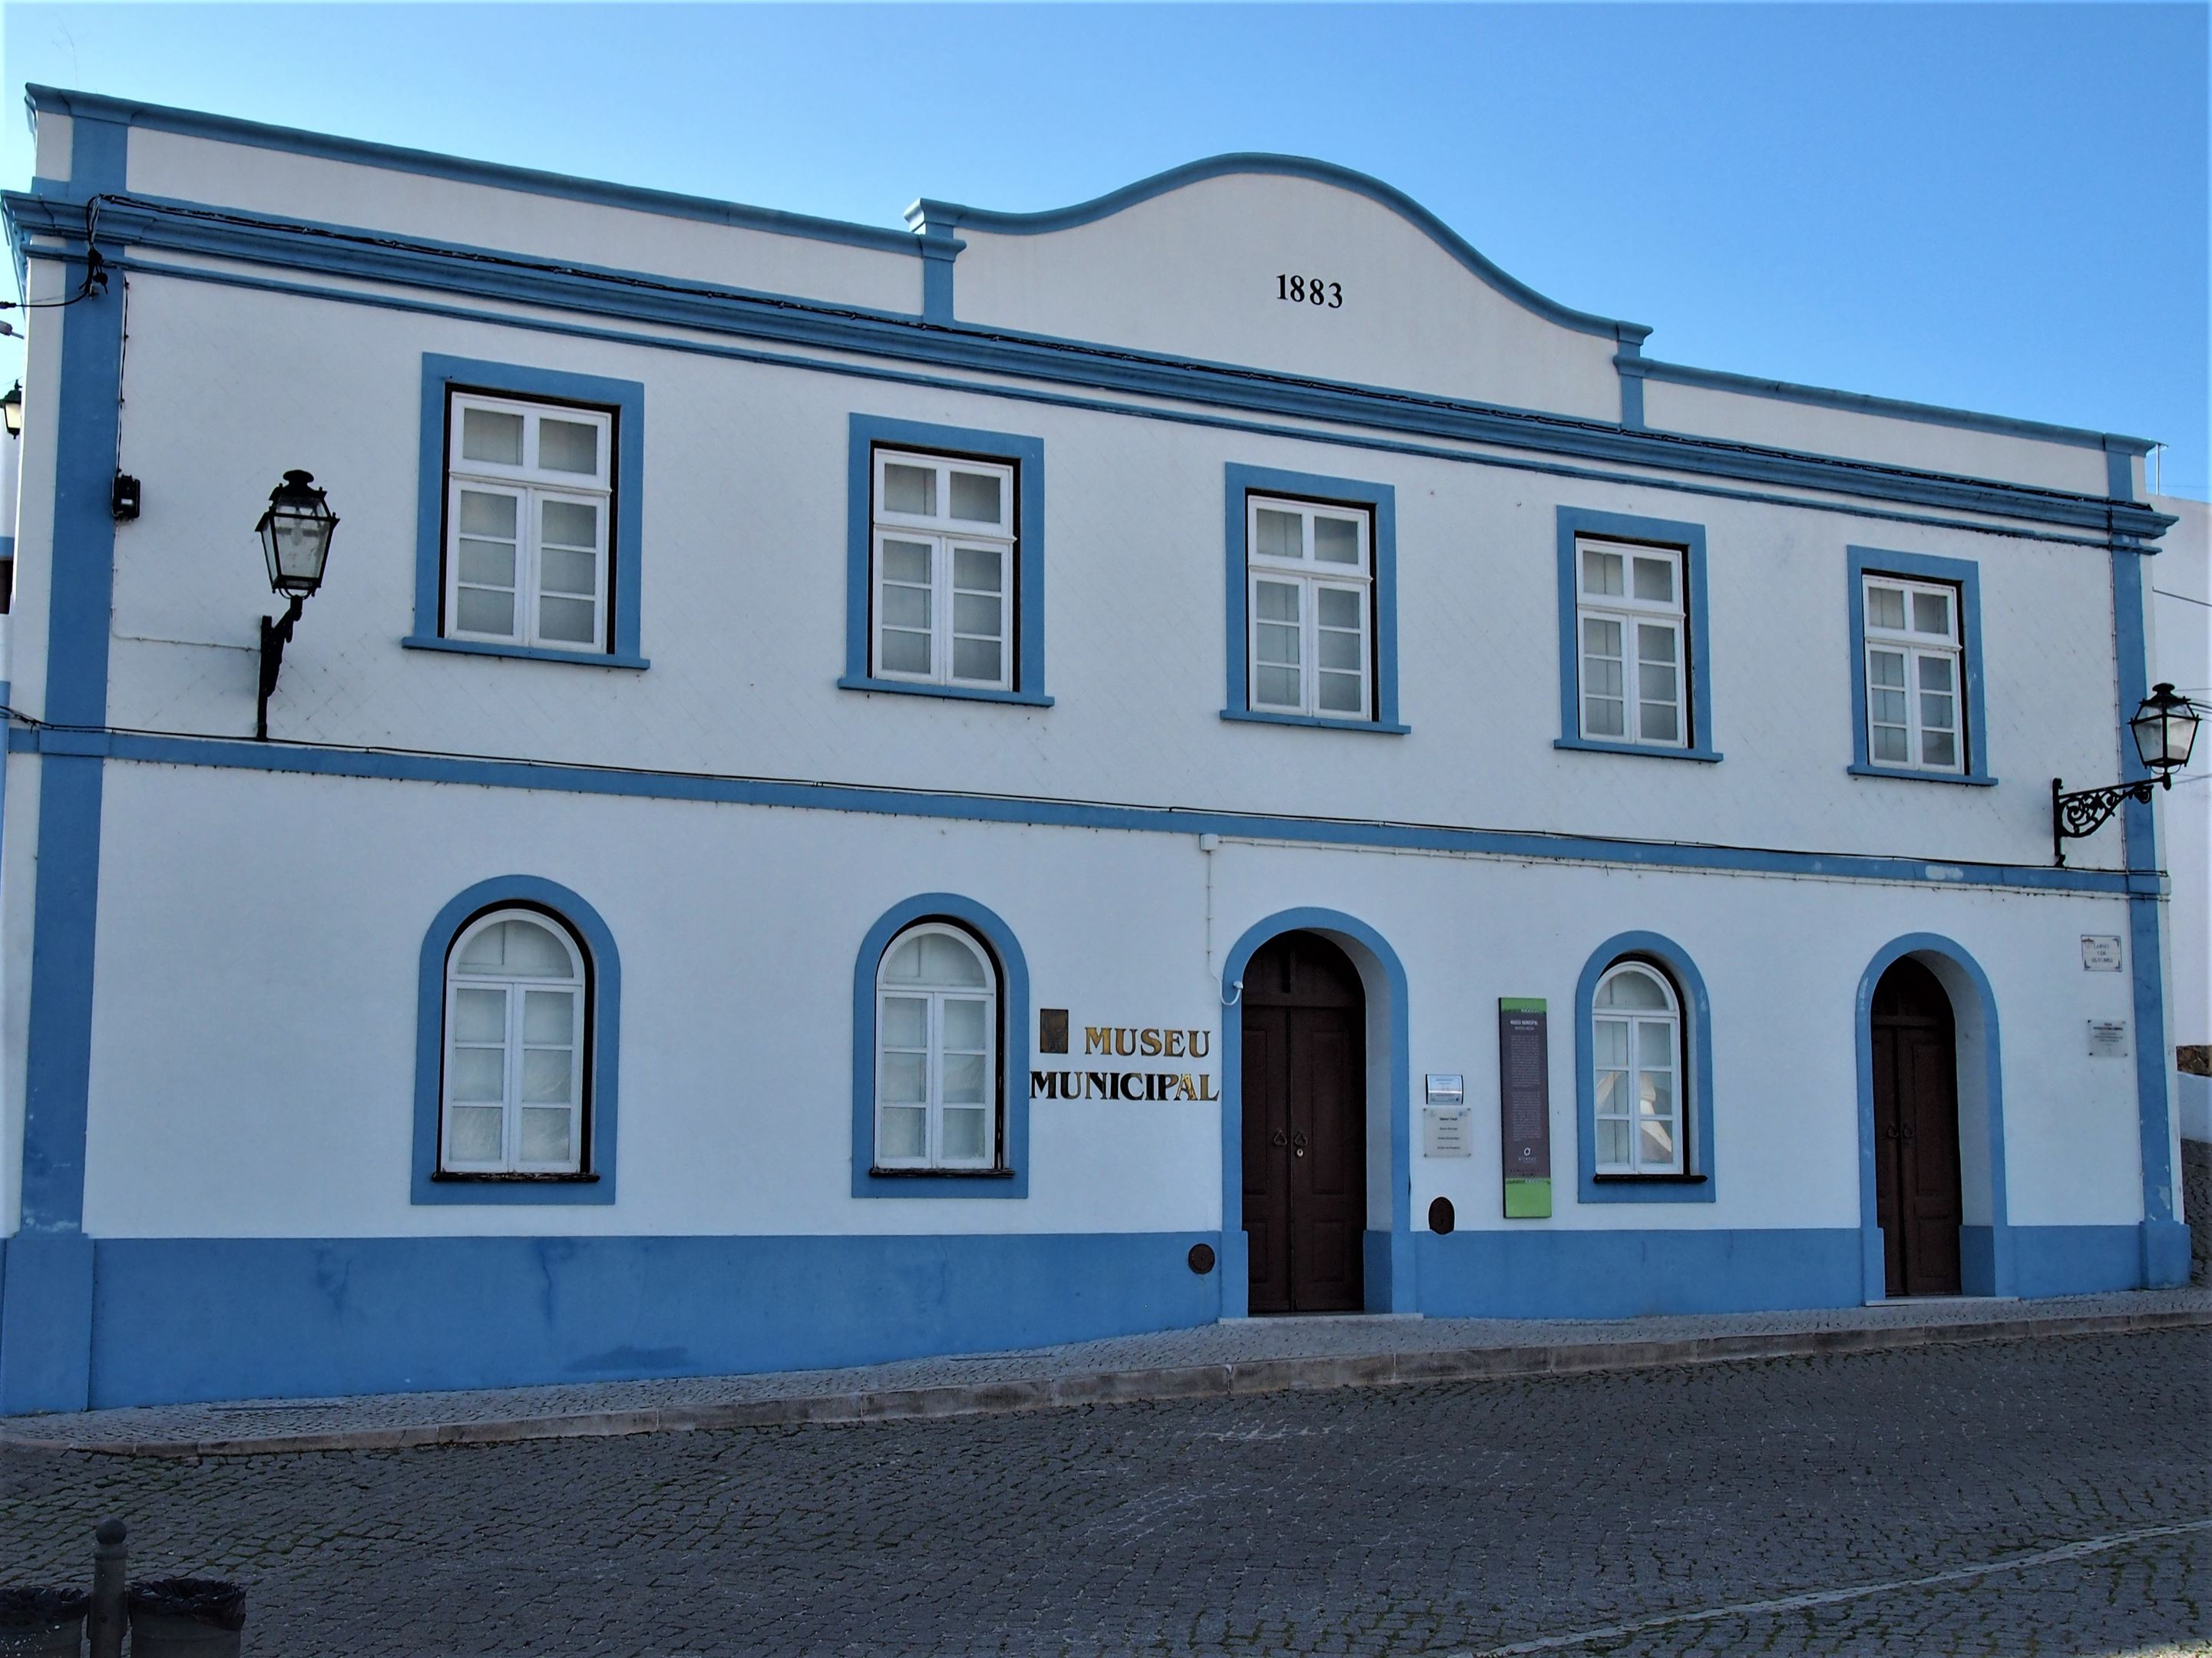 The Museu Municipal, Aljezur